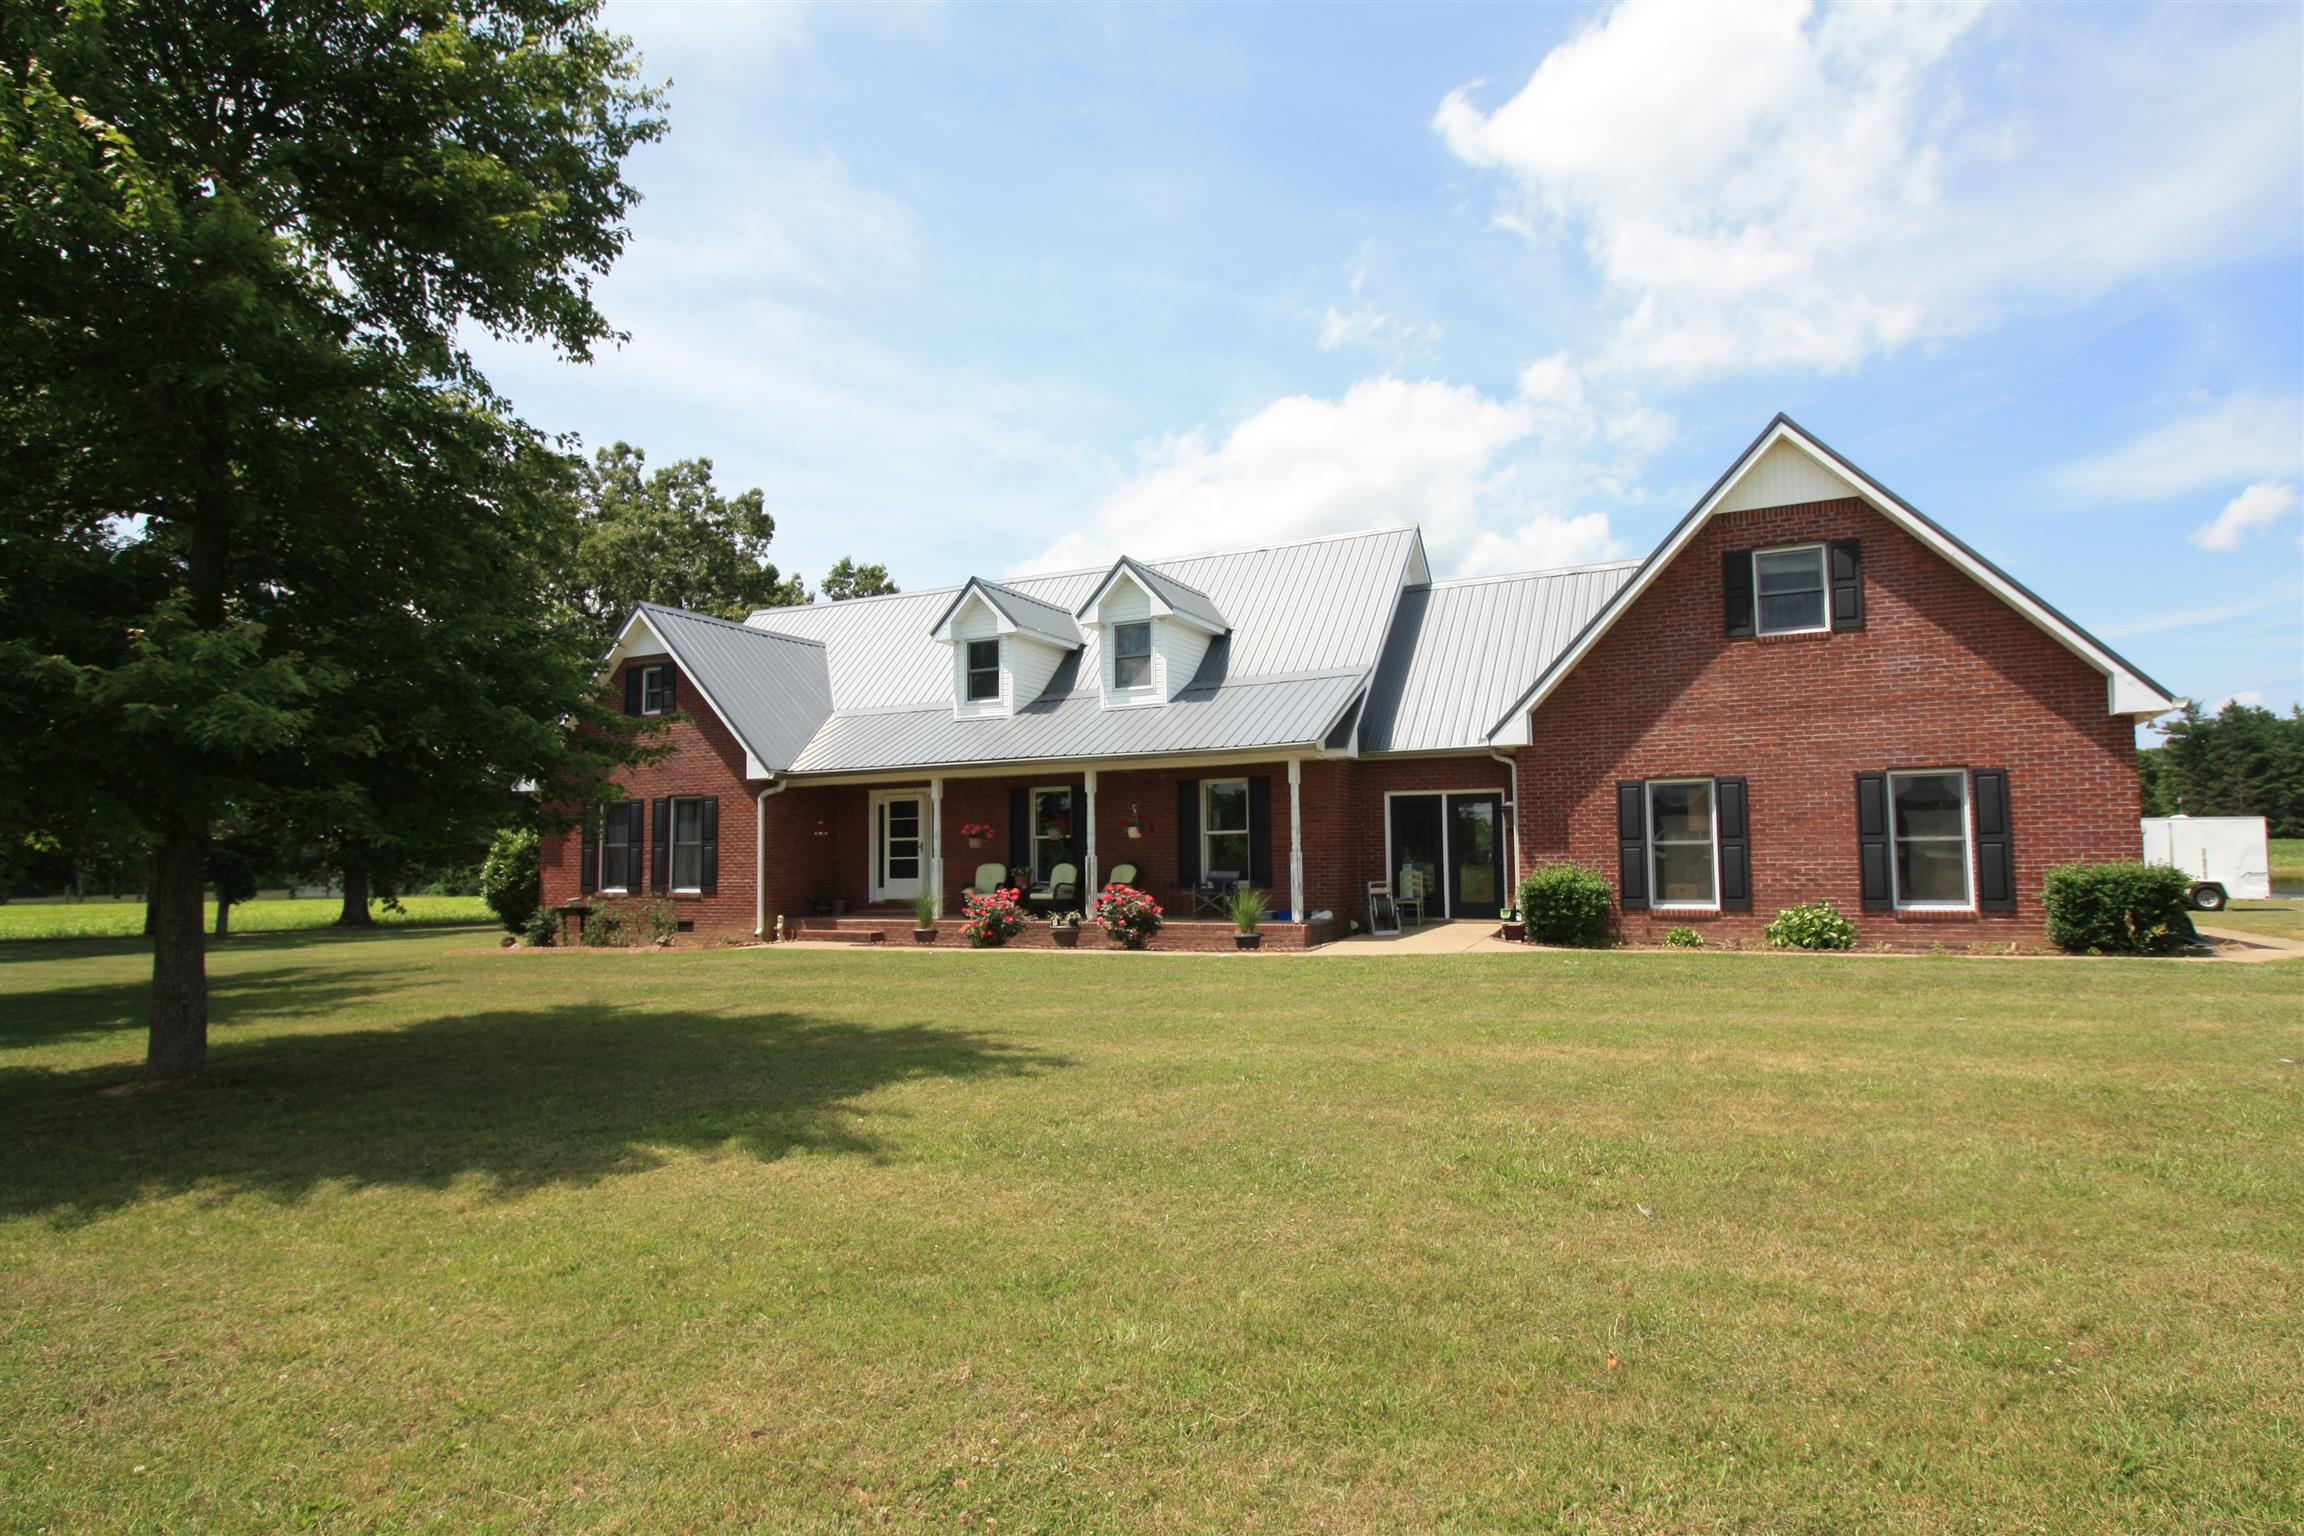 3018 Old Nashville Highway 3018, MC EWEN, TN 37101 - MC EWEN, TN real estate listing